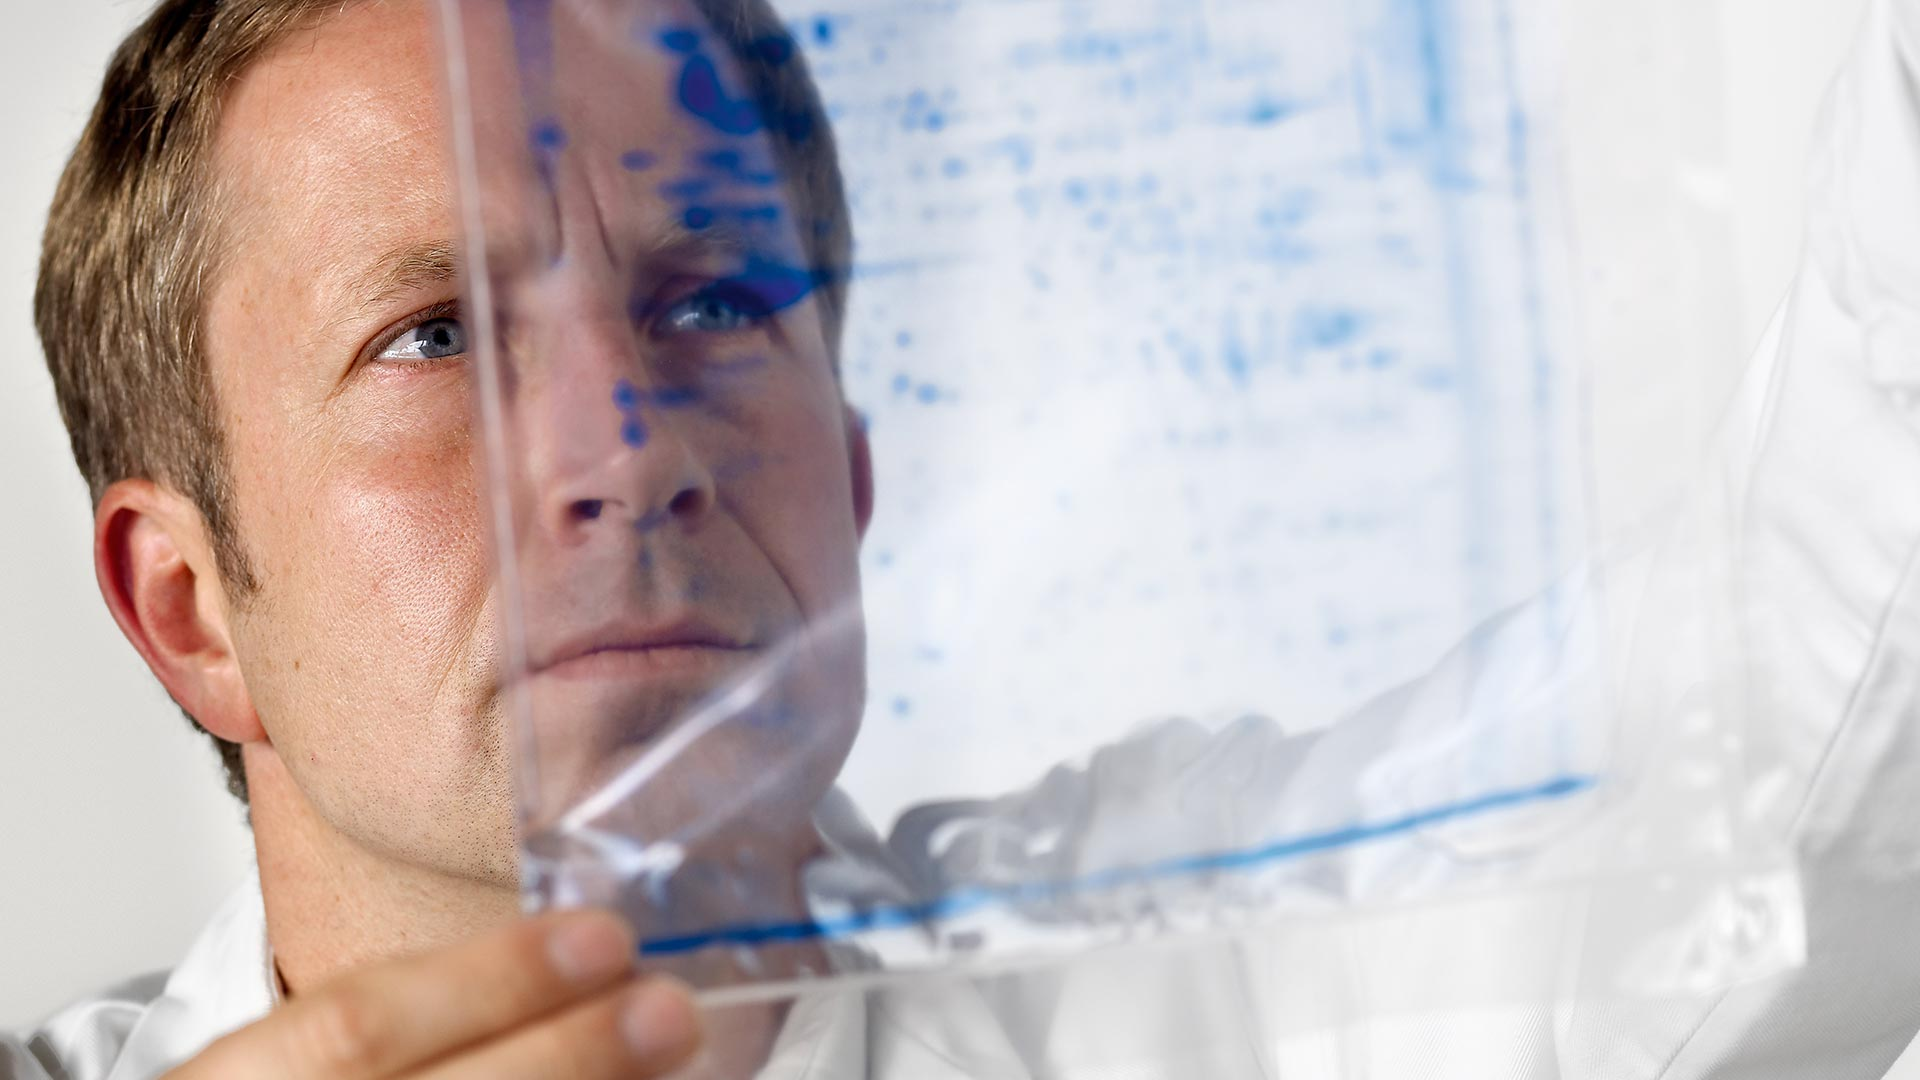 Male researcher looking at medical scan